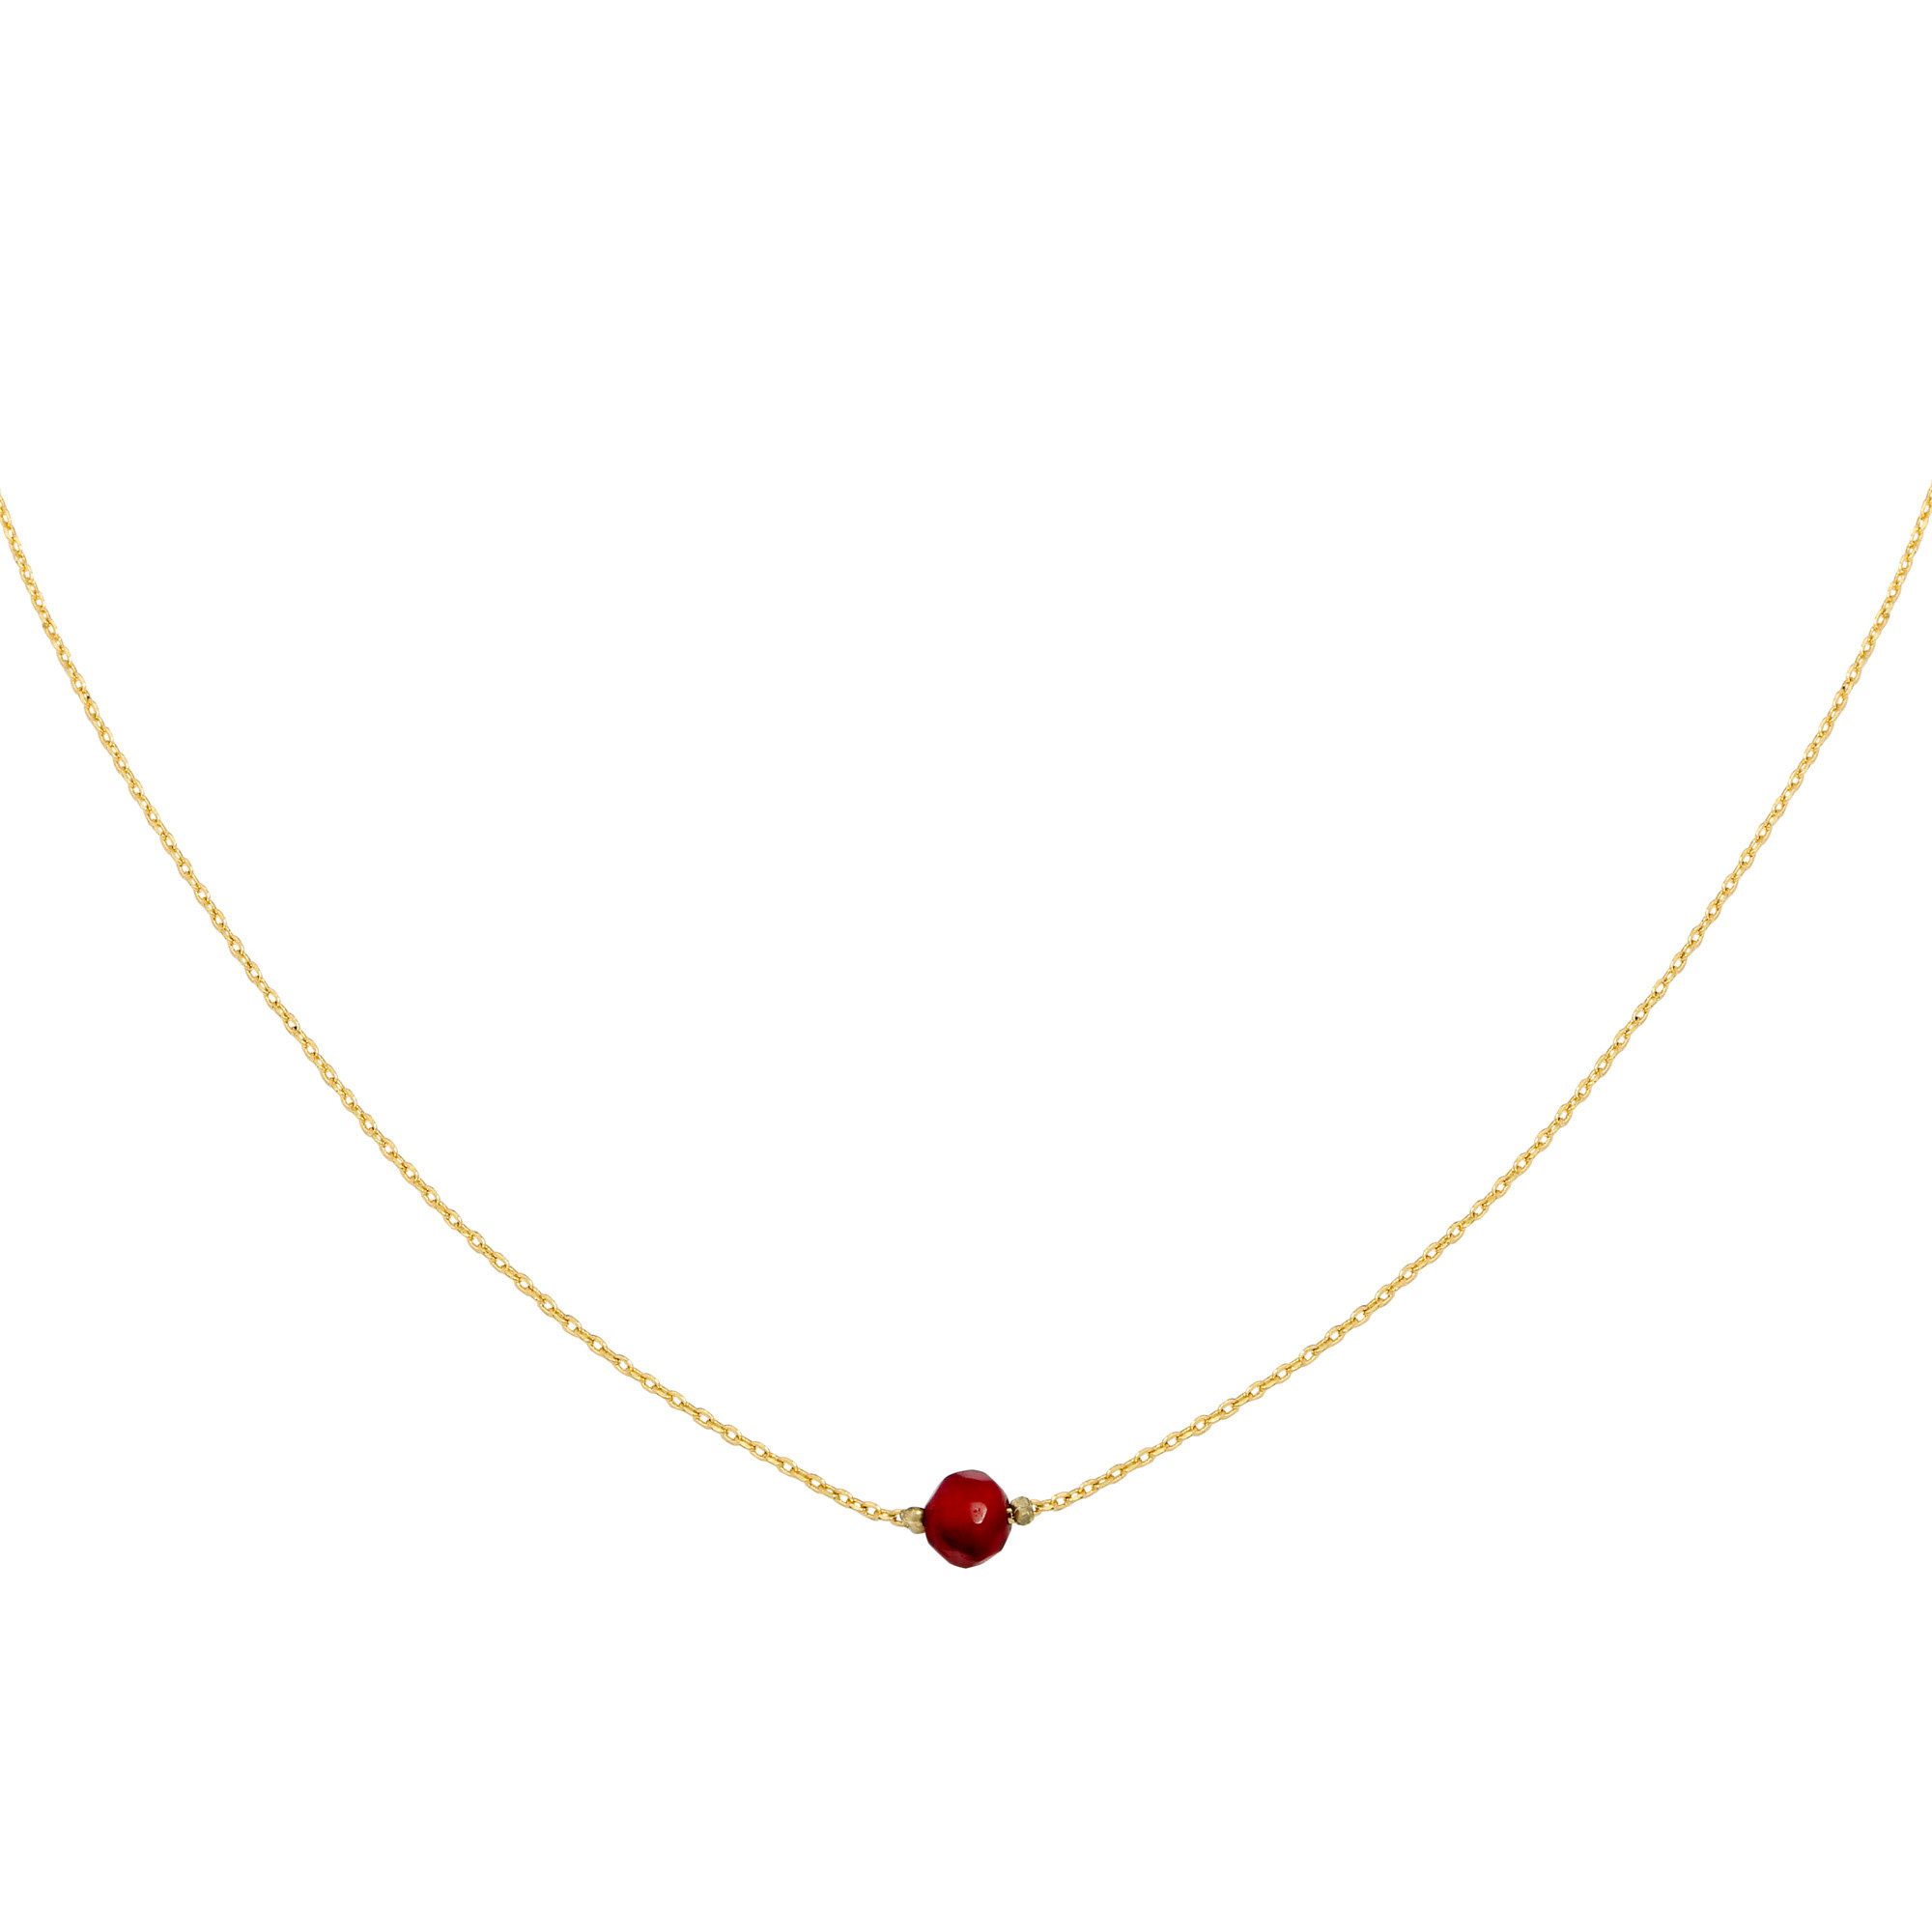 With love Necklace little one - gold red